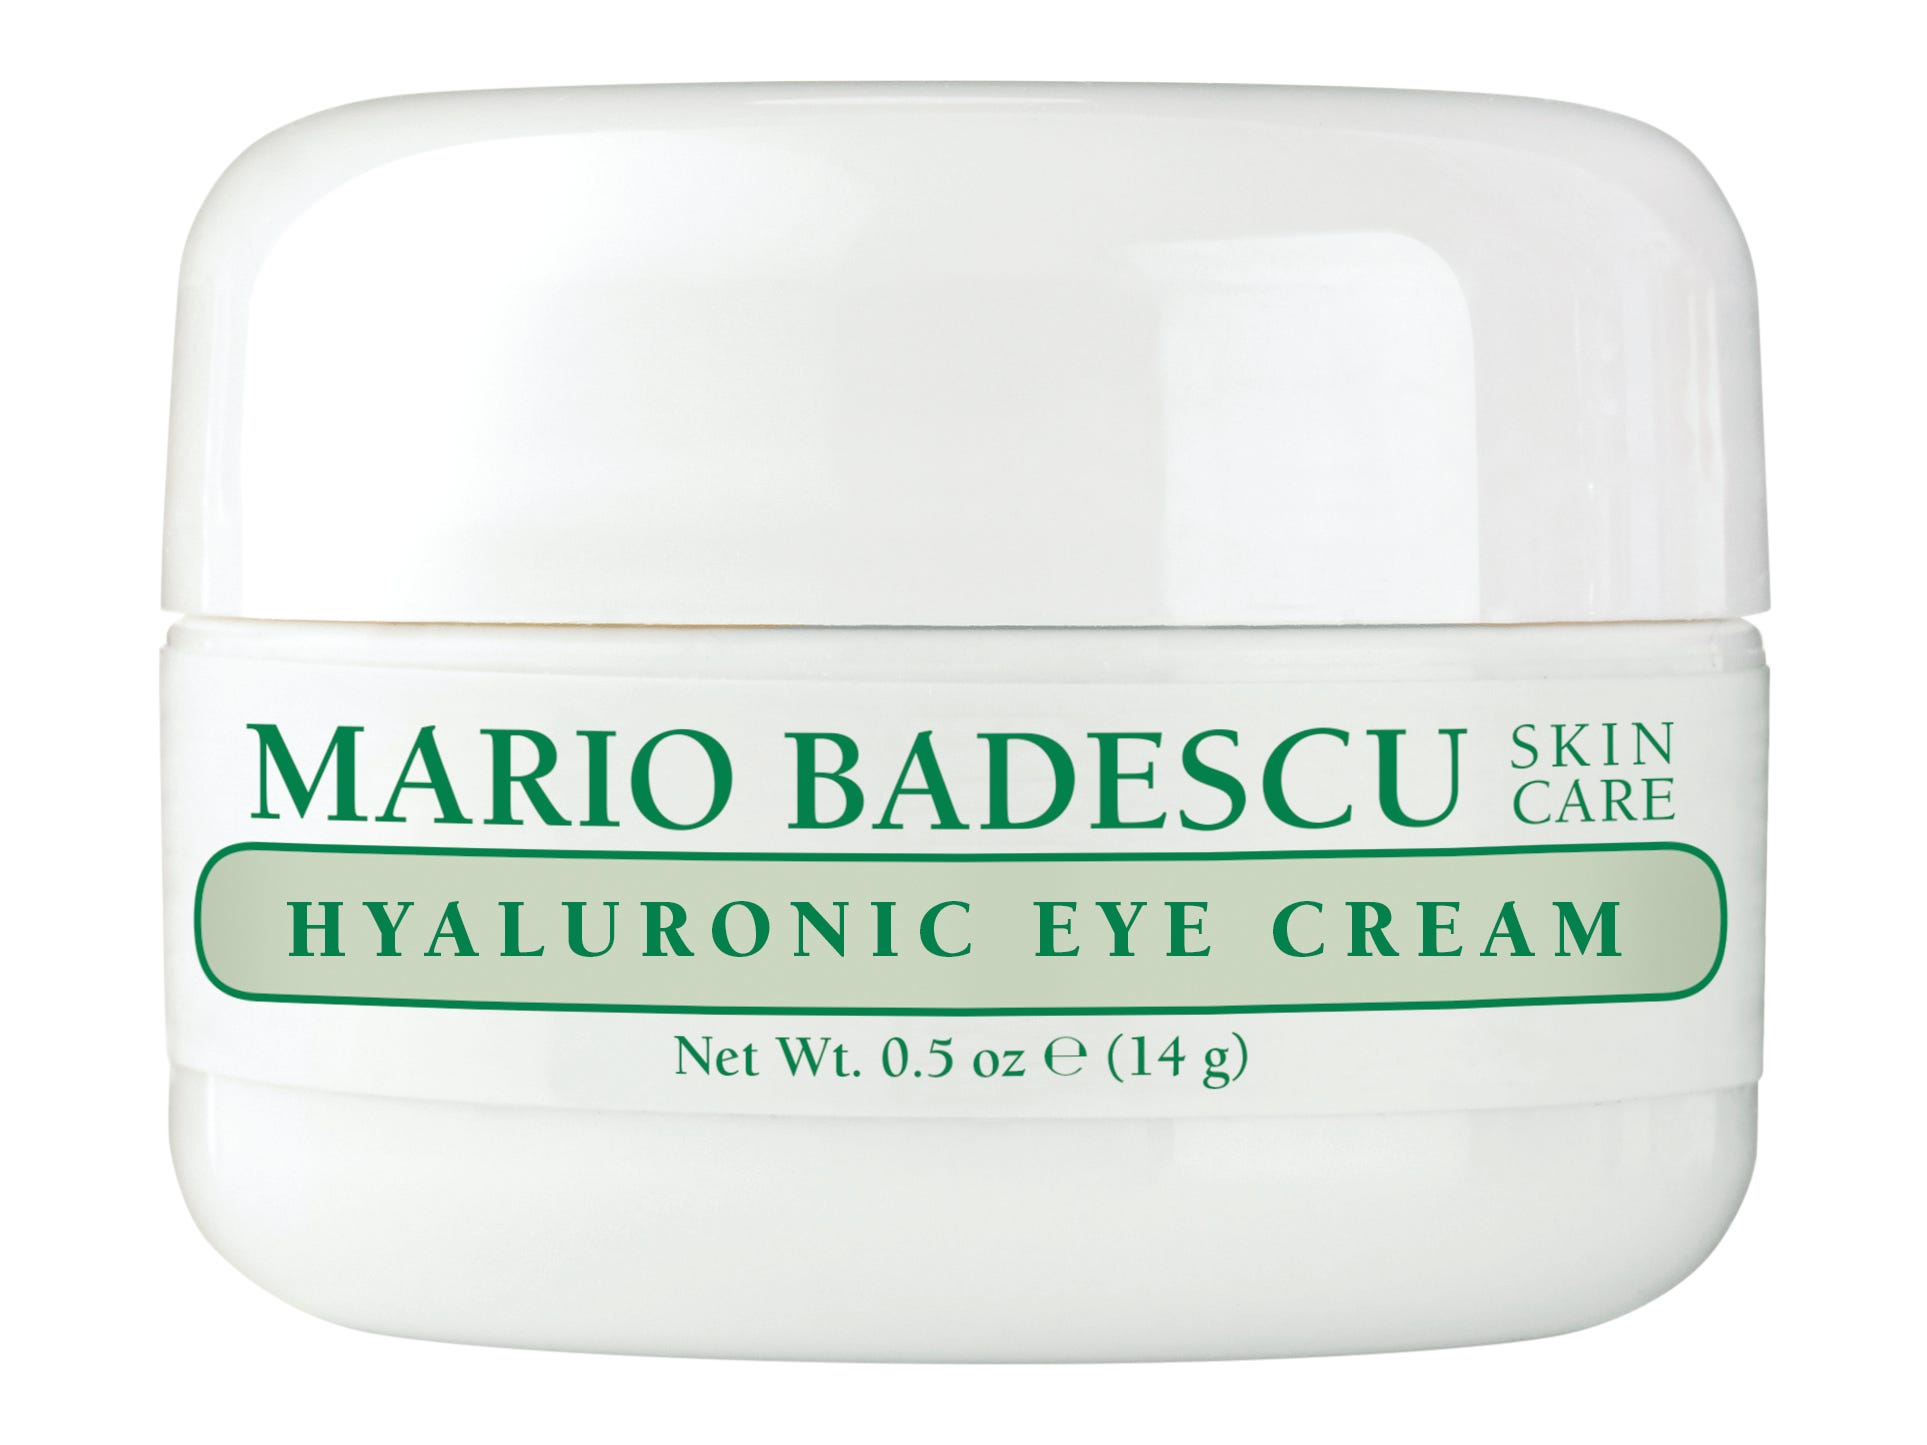 Mario Badescu's Hyaluronic Eye Cream is gentle enough for all skin types while still powerful enough to hydrate and smooth under-eyes. The non-greasy formula is lightweight and will leave you feeling bright and fresh, $18 at ulta.com.